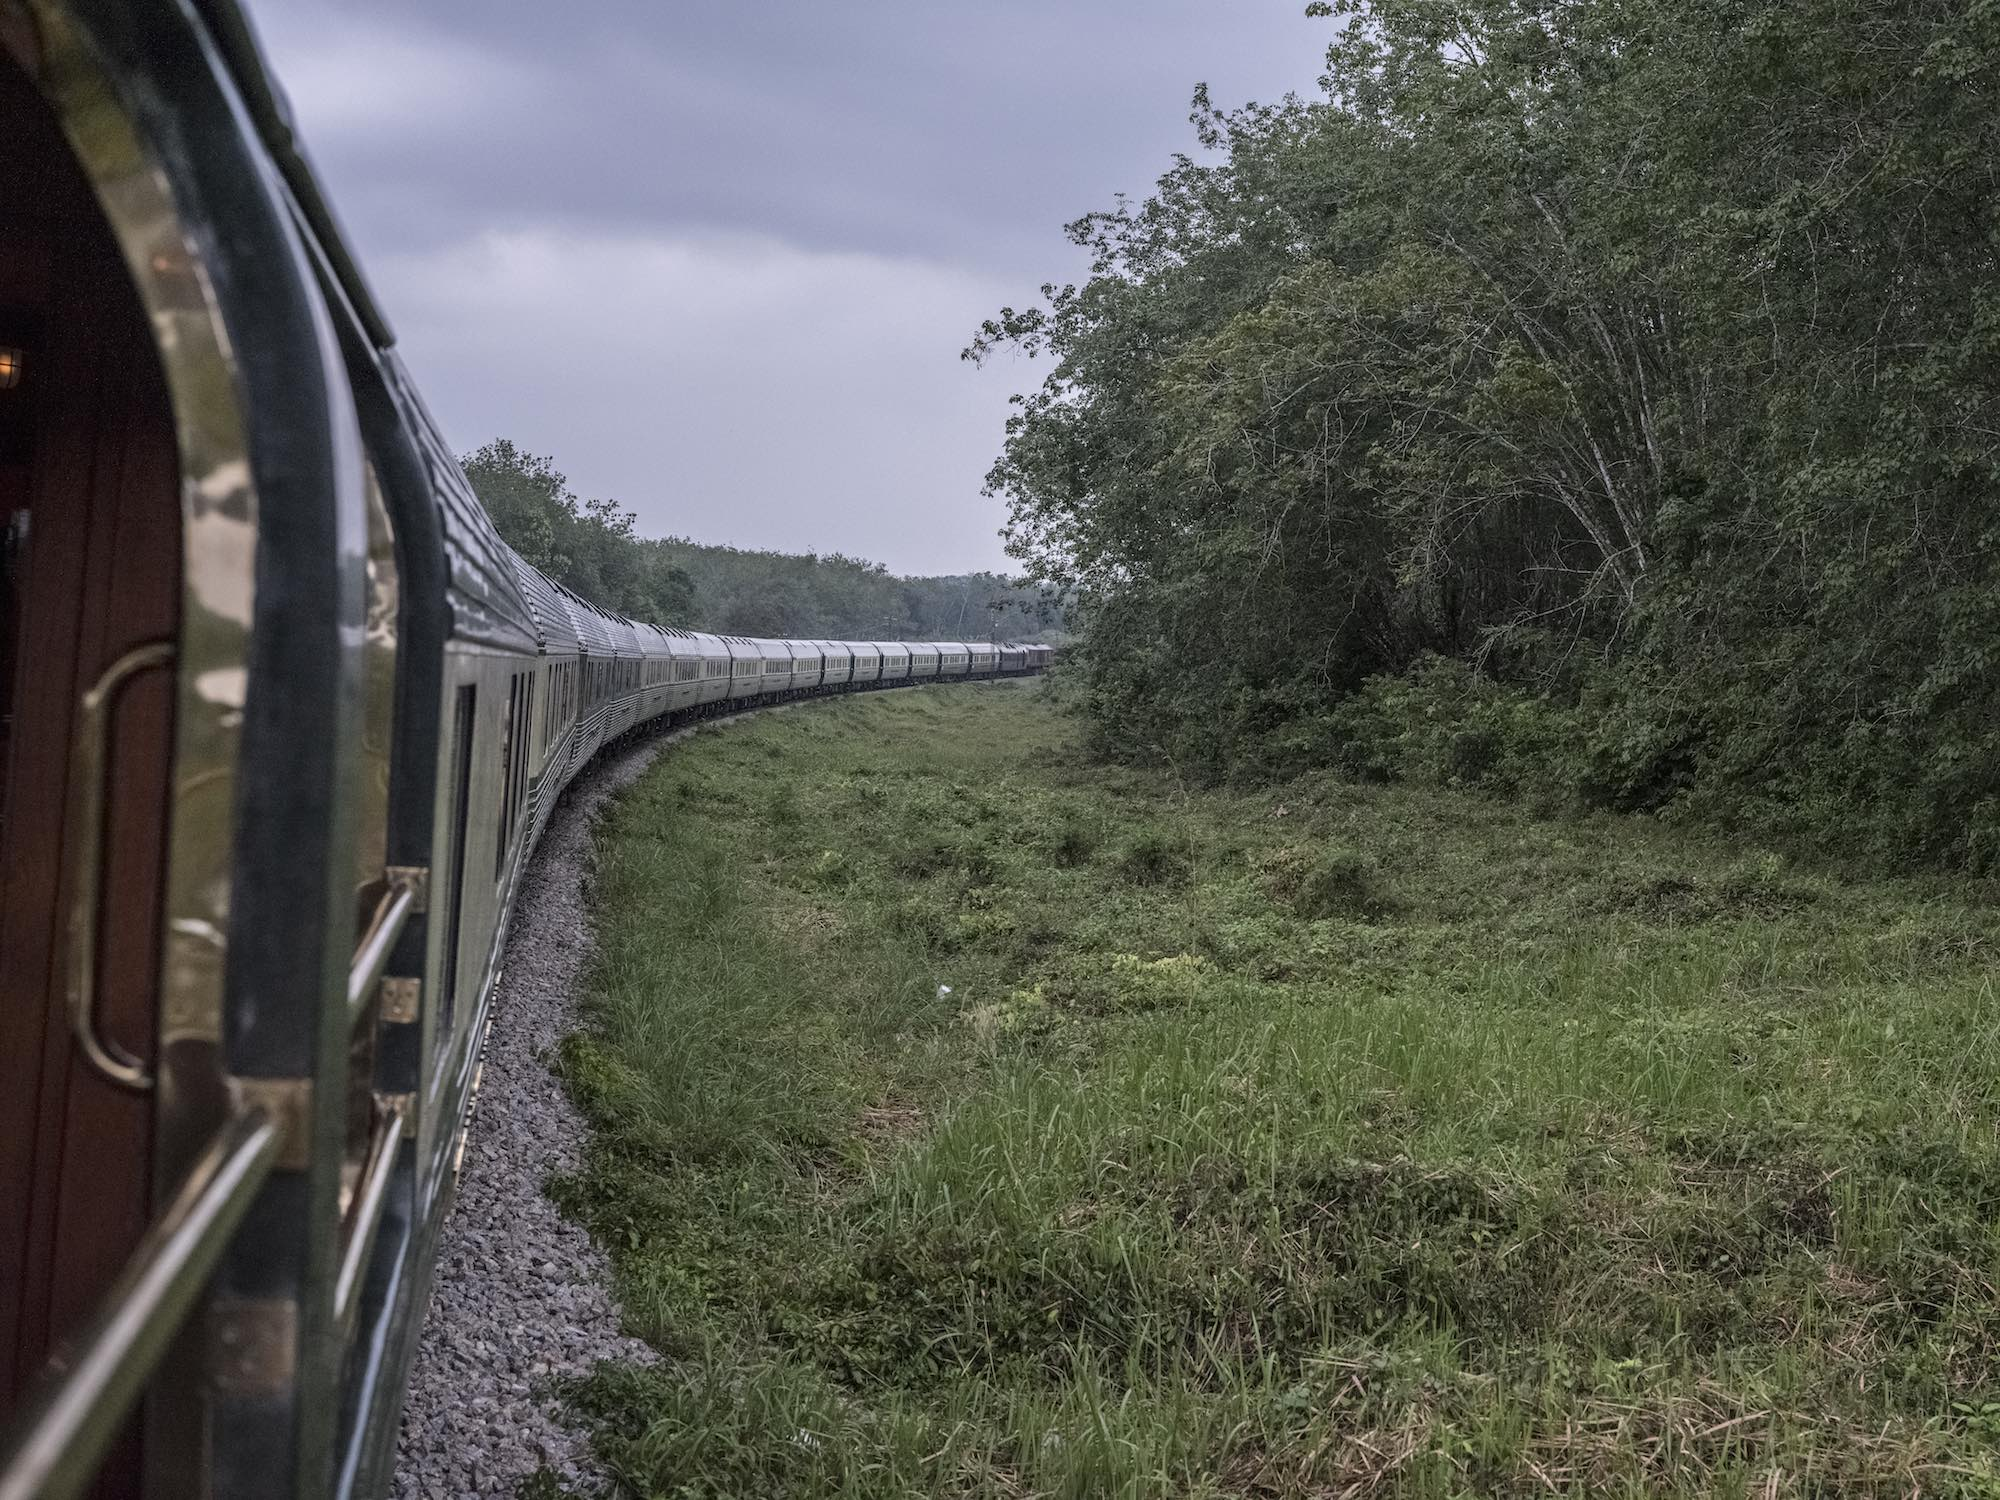 An Extraordinary Train Journey with Eastern & Oriental Express (E&O)